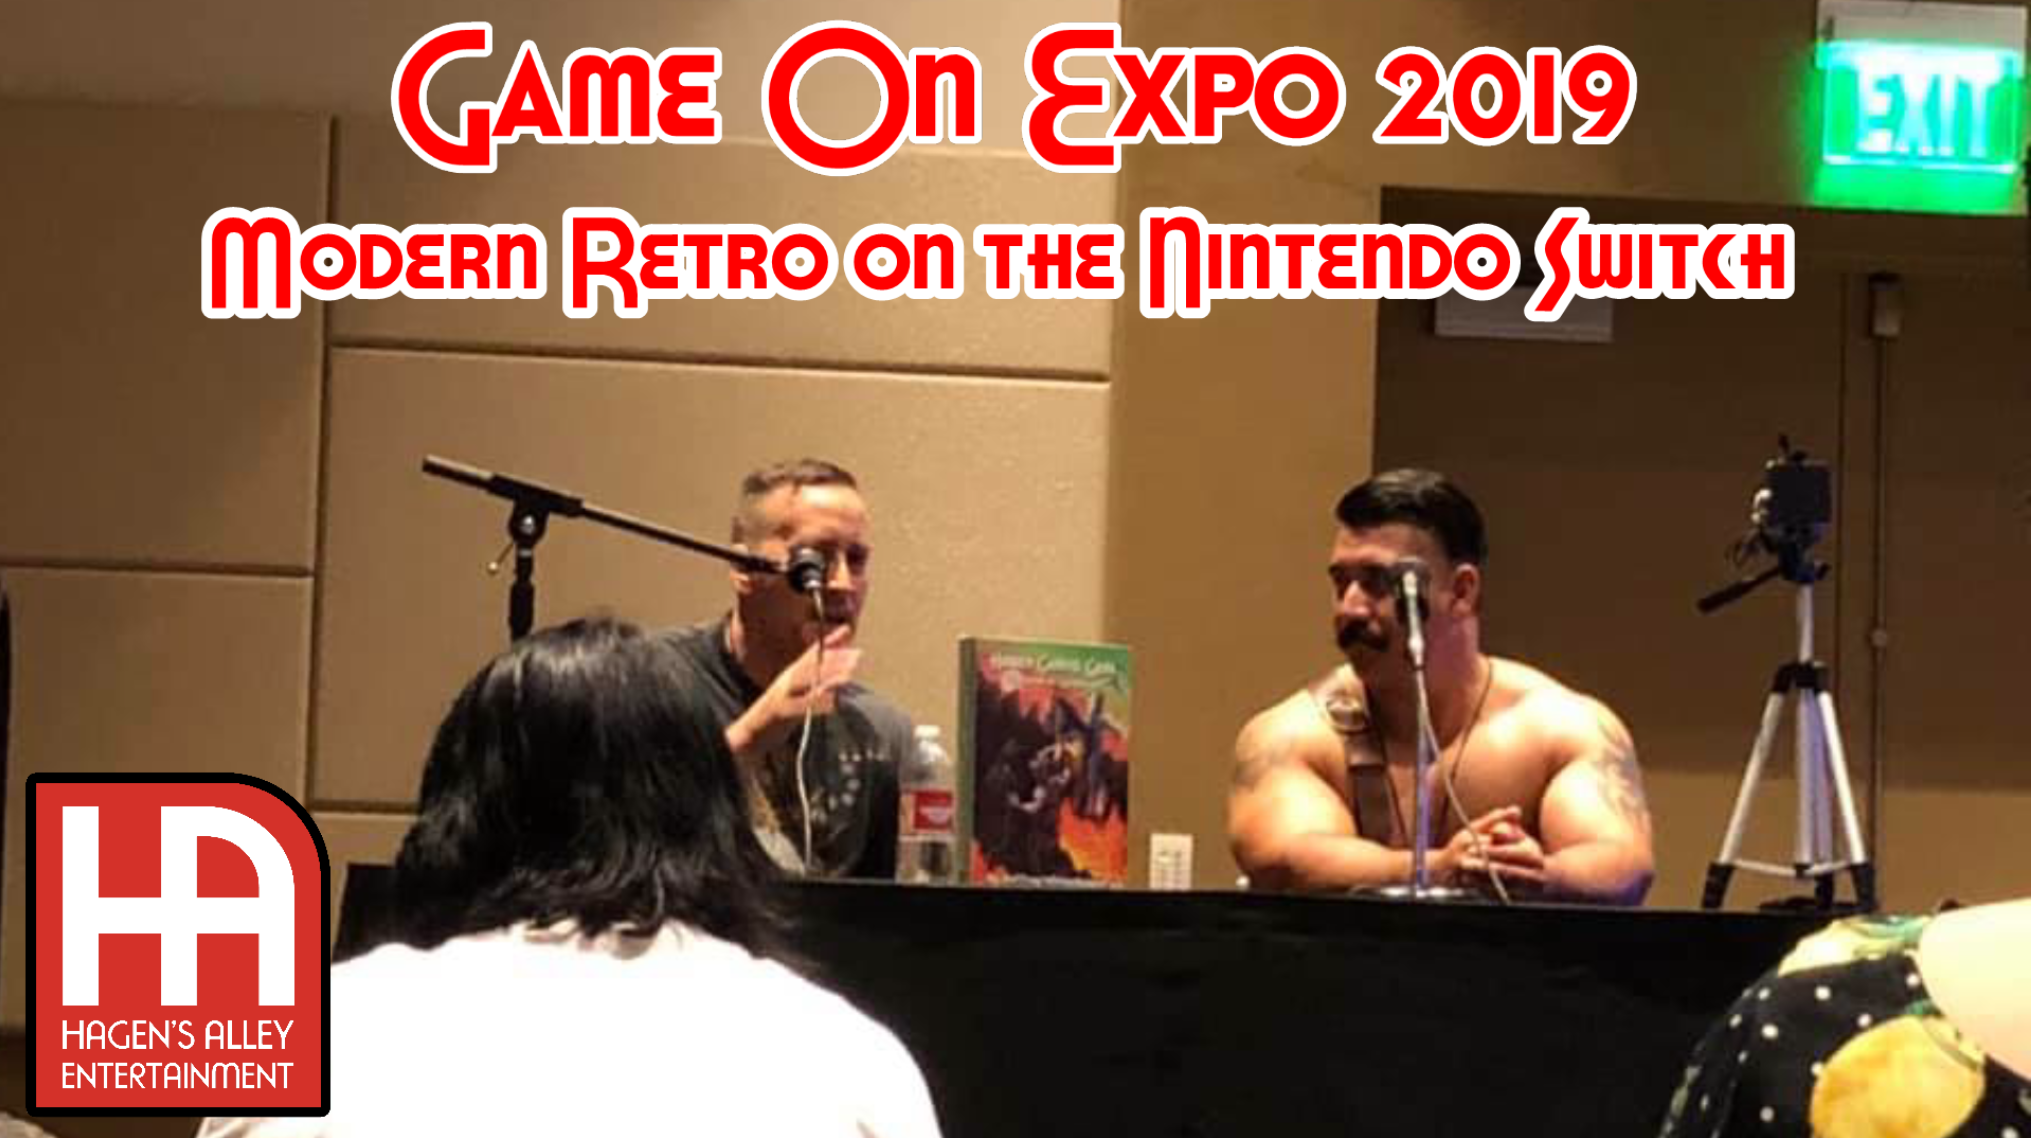 Modern Retro on the Nintendo Switch | Game On Expo 2019